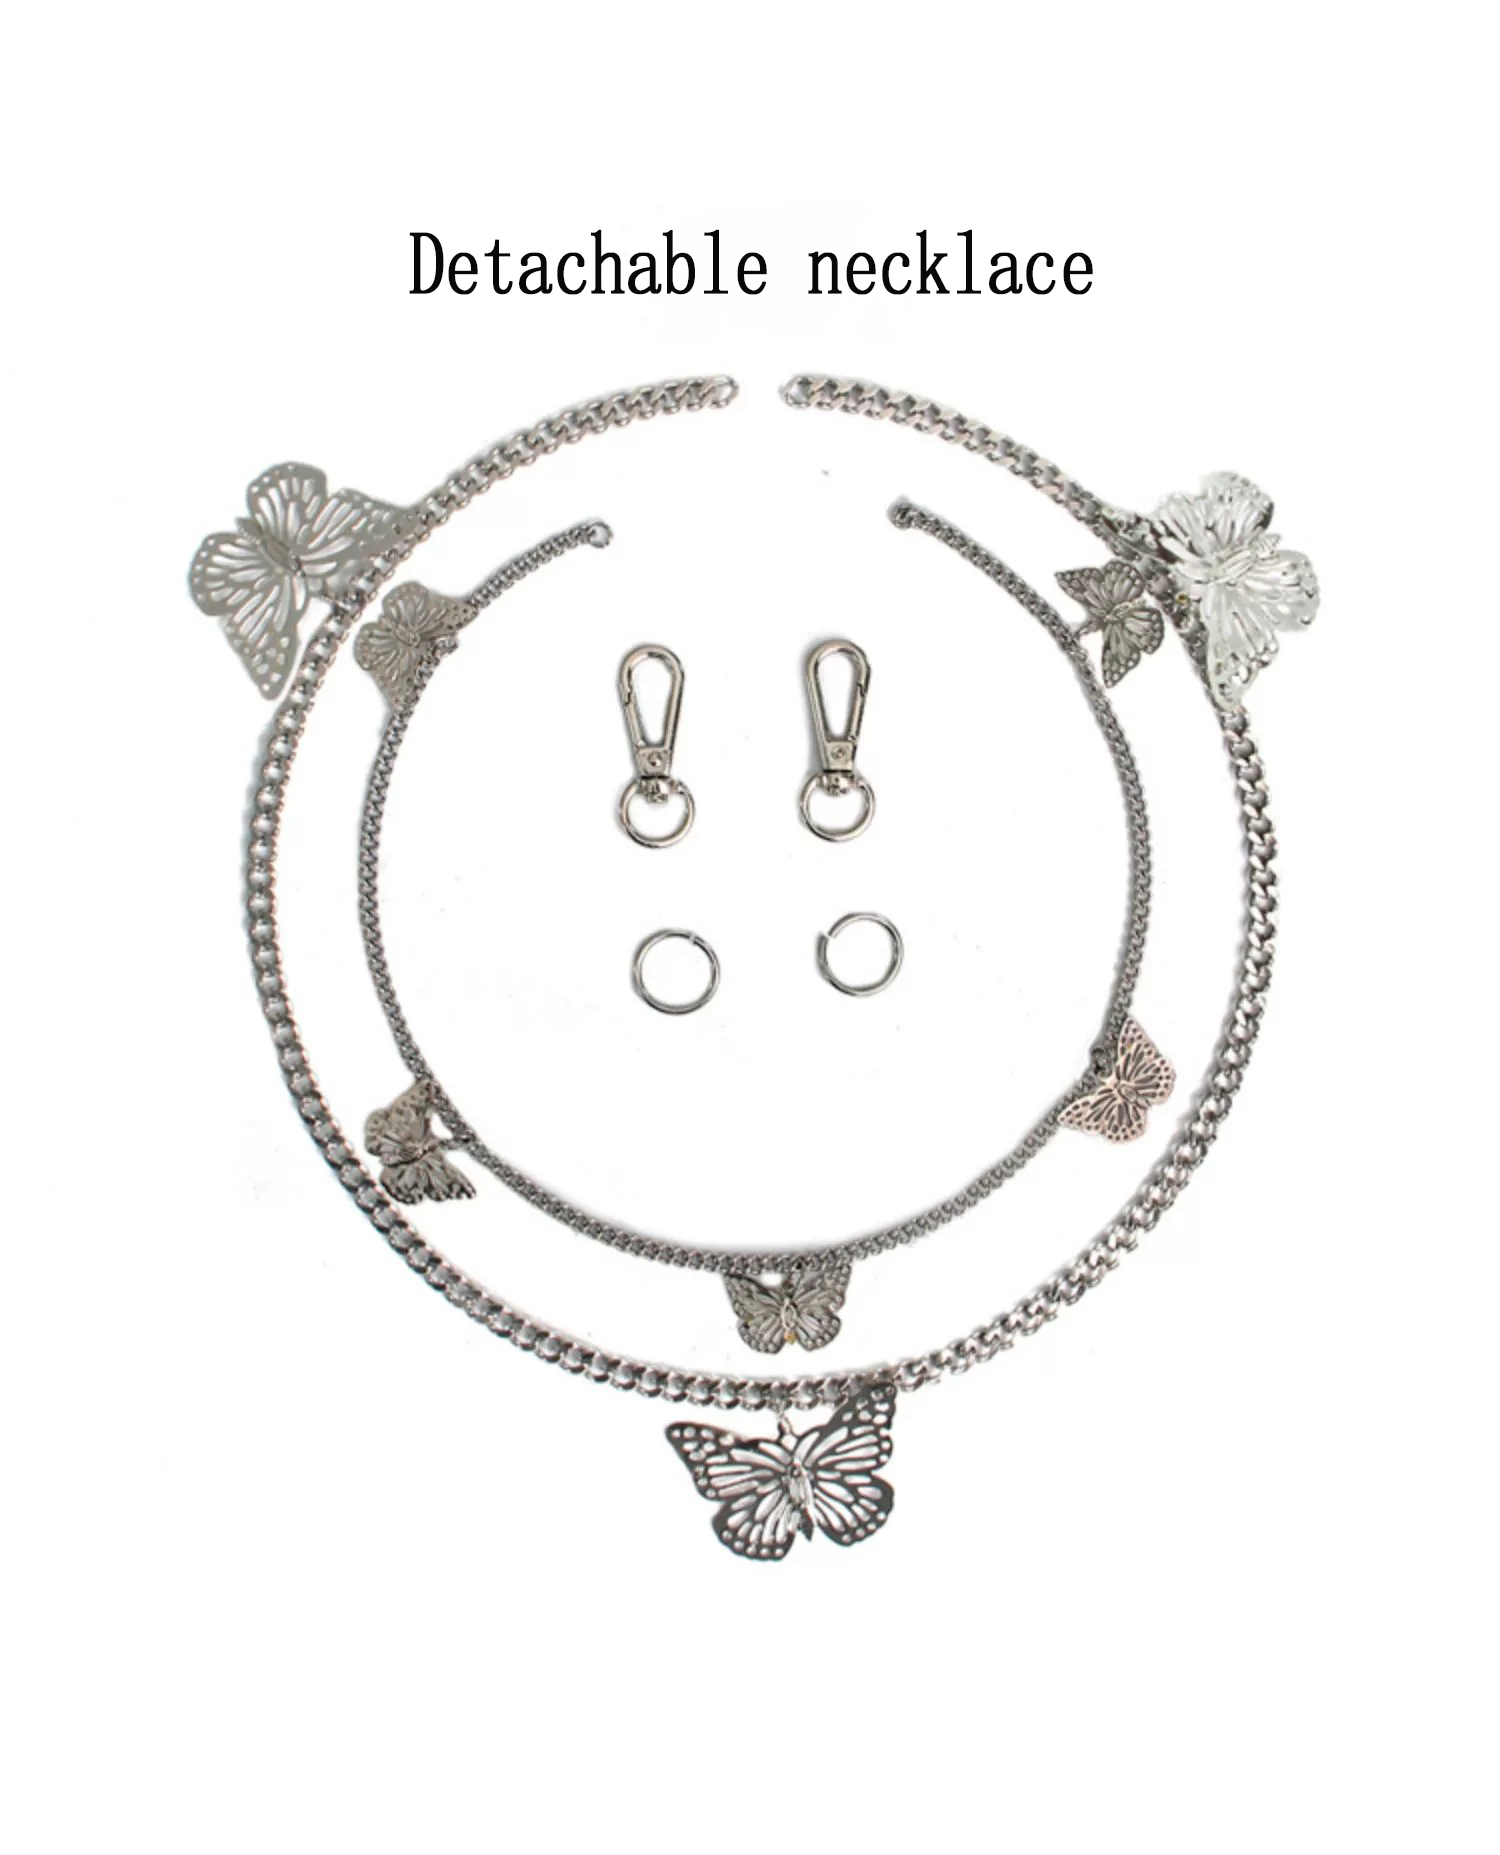 2020 Hot Sale Waist Chain Necklace All-match Double-layer Butterfly Pants Chain Jewelry Hip-hop Belt Hanging Chain Accessories